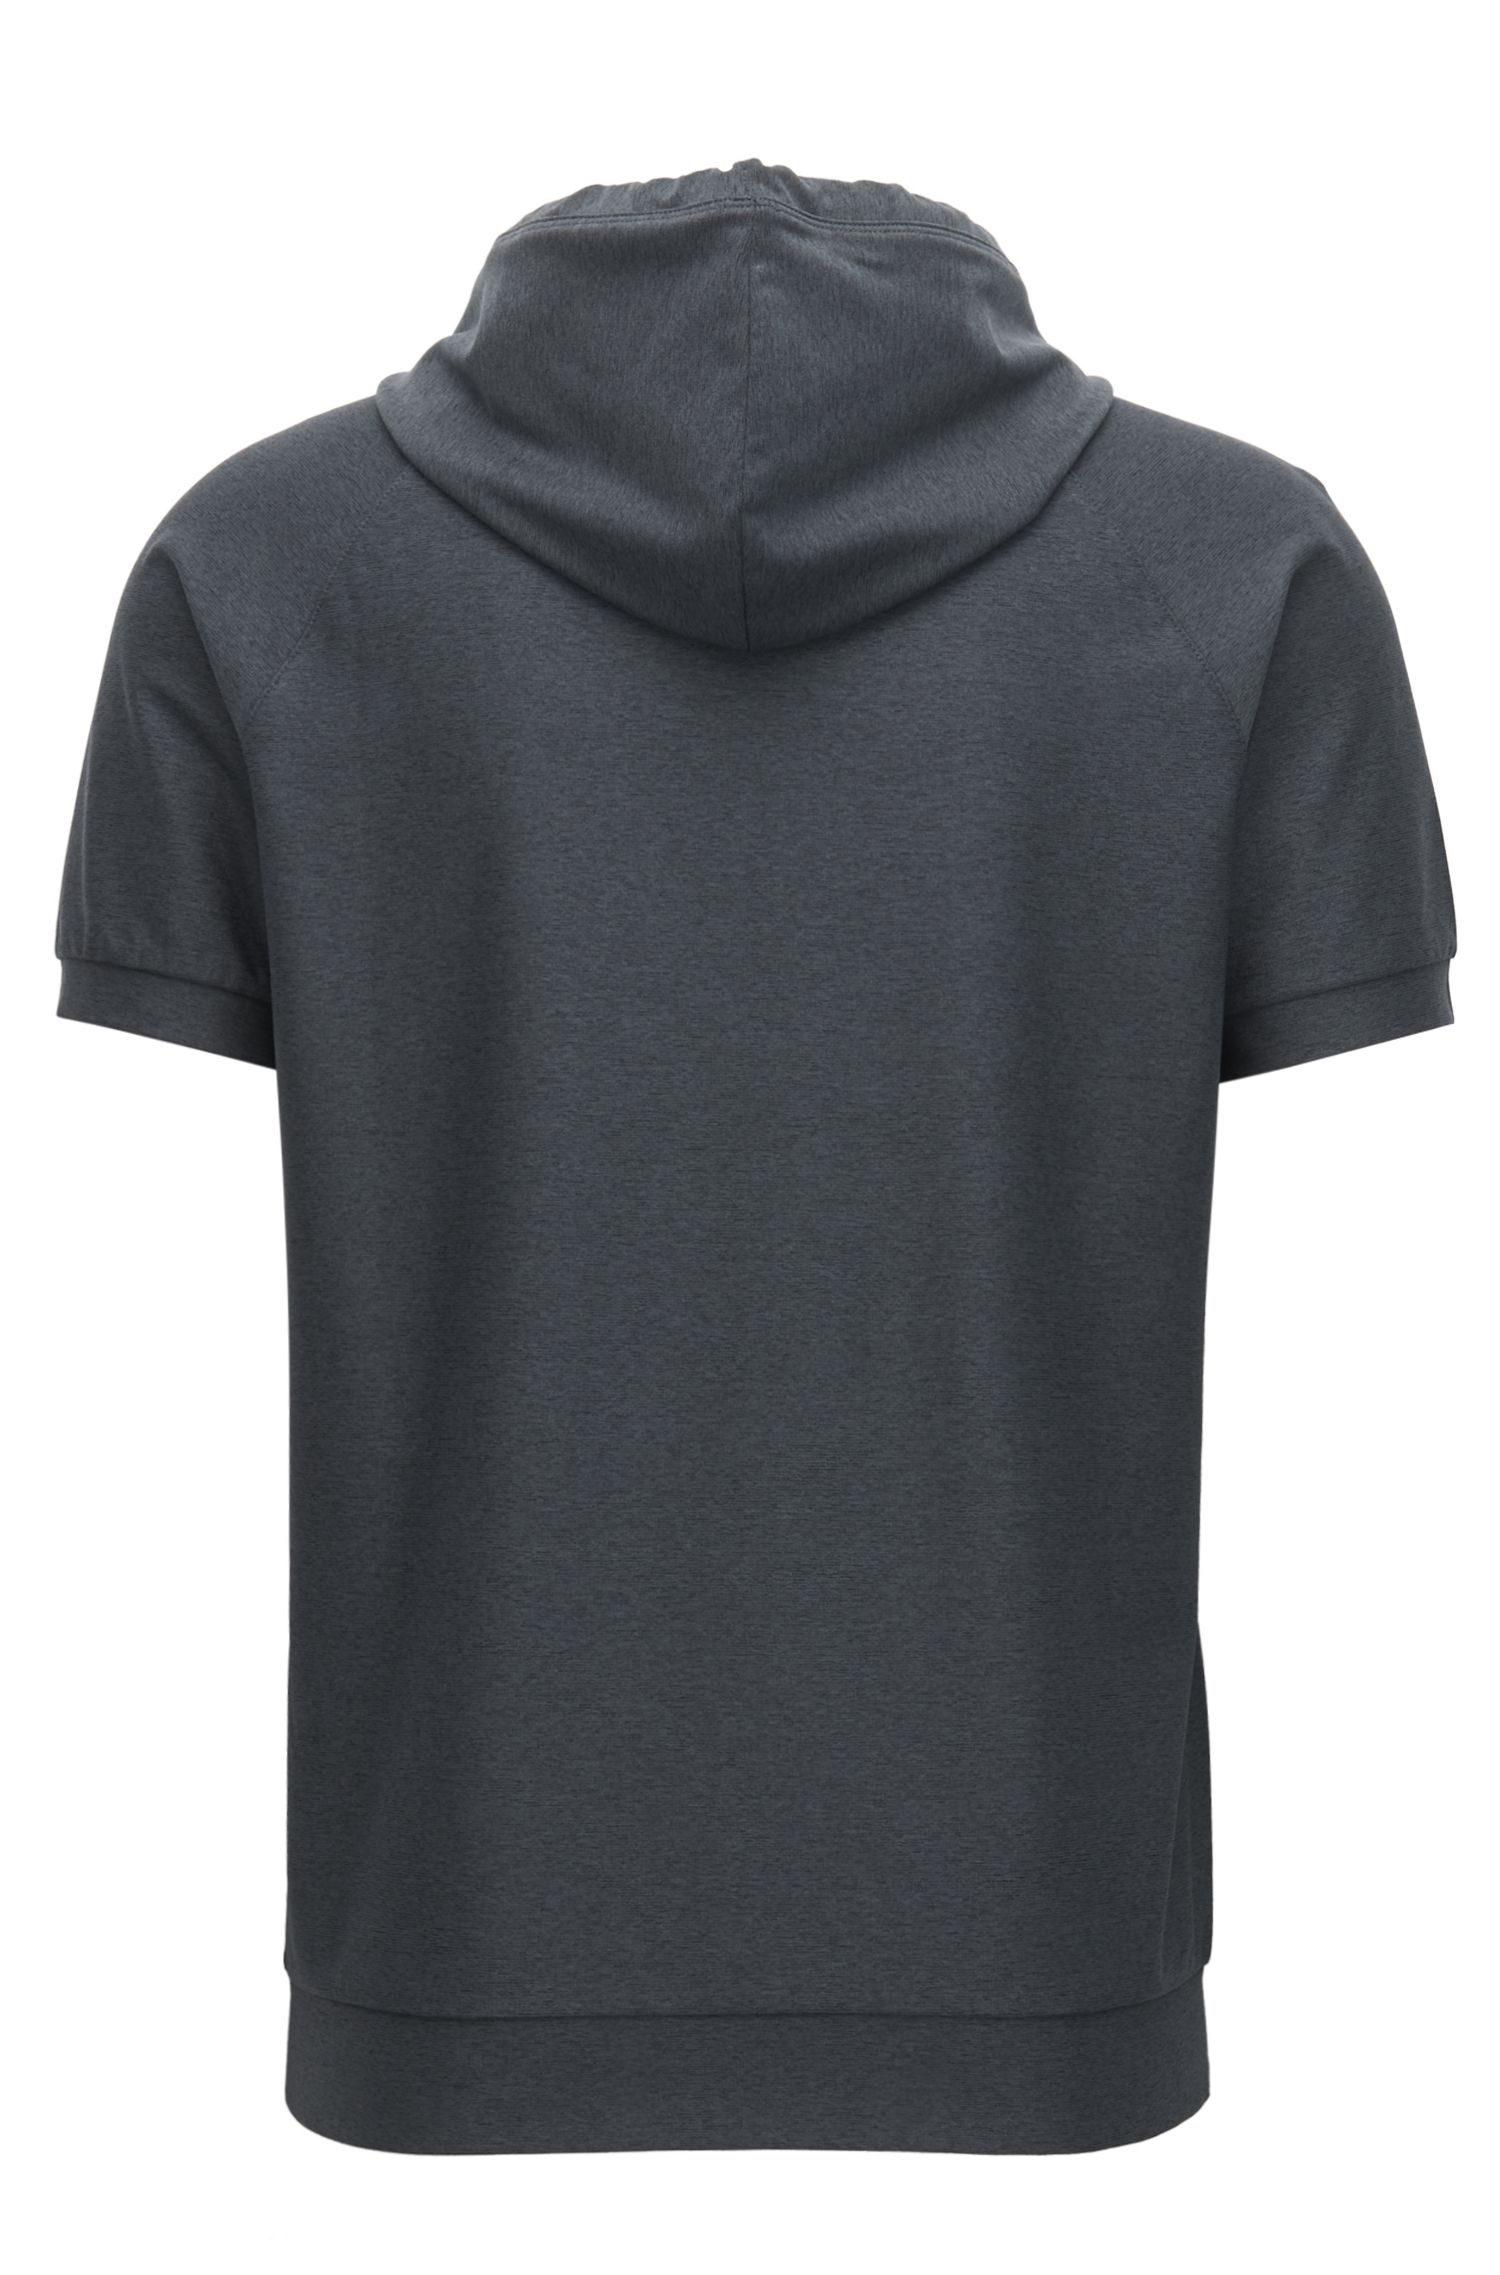 Short-sleeved hooded sweater in active-stretch mélange